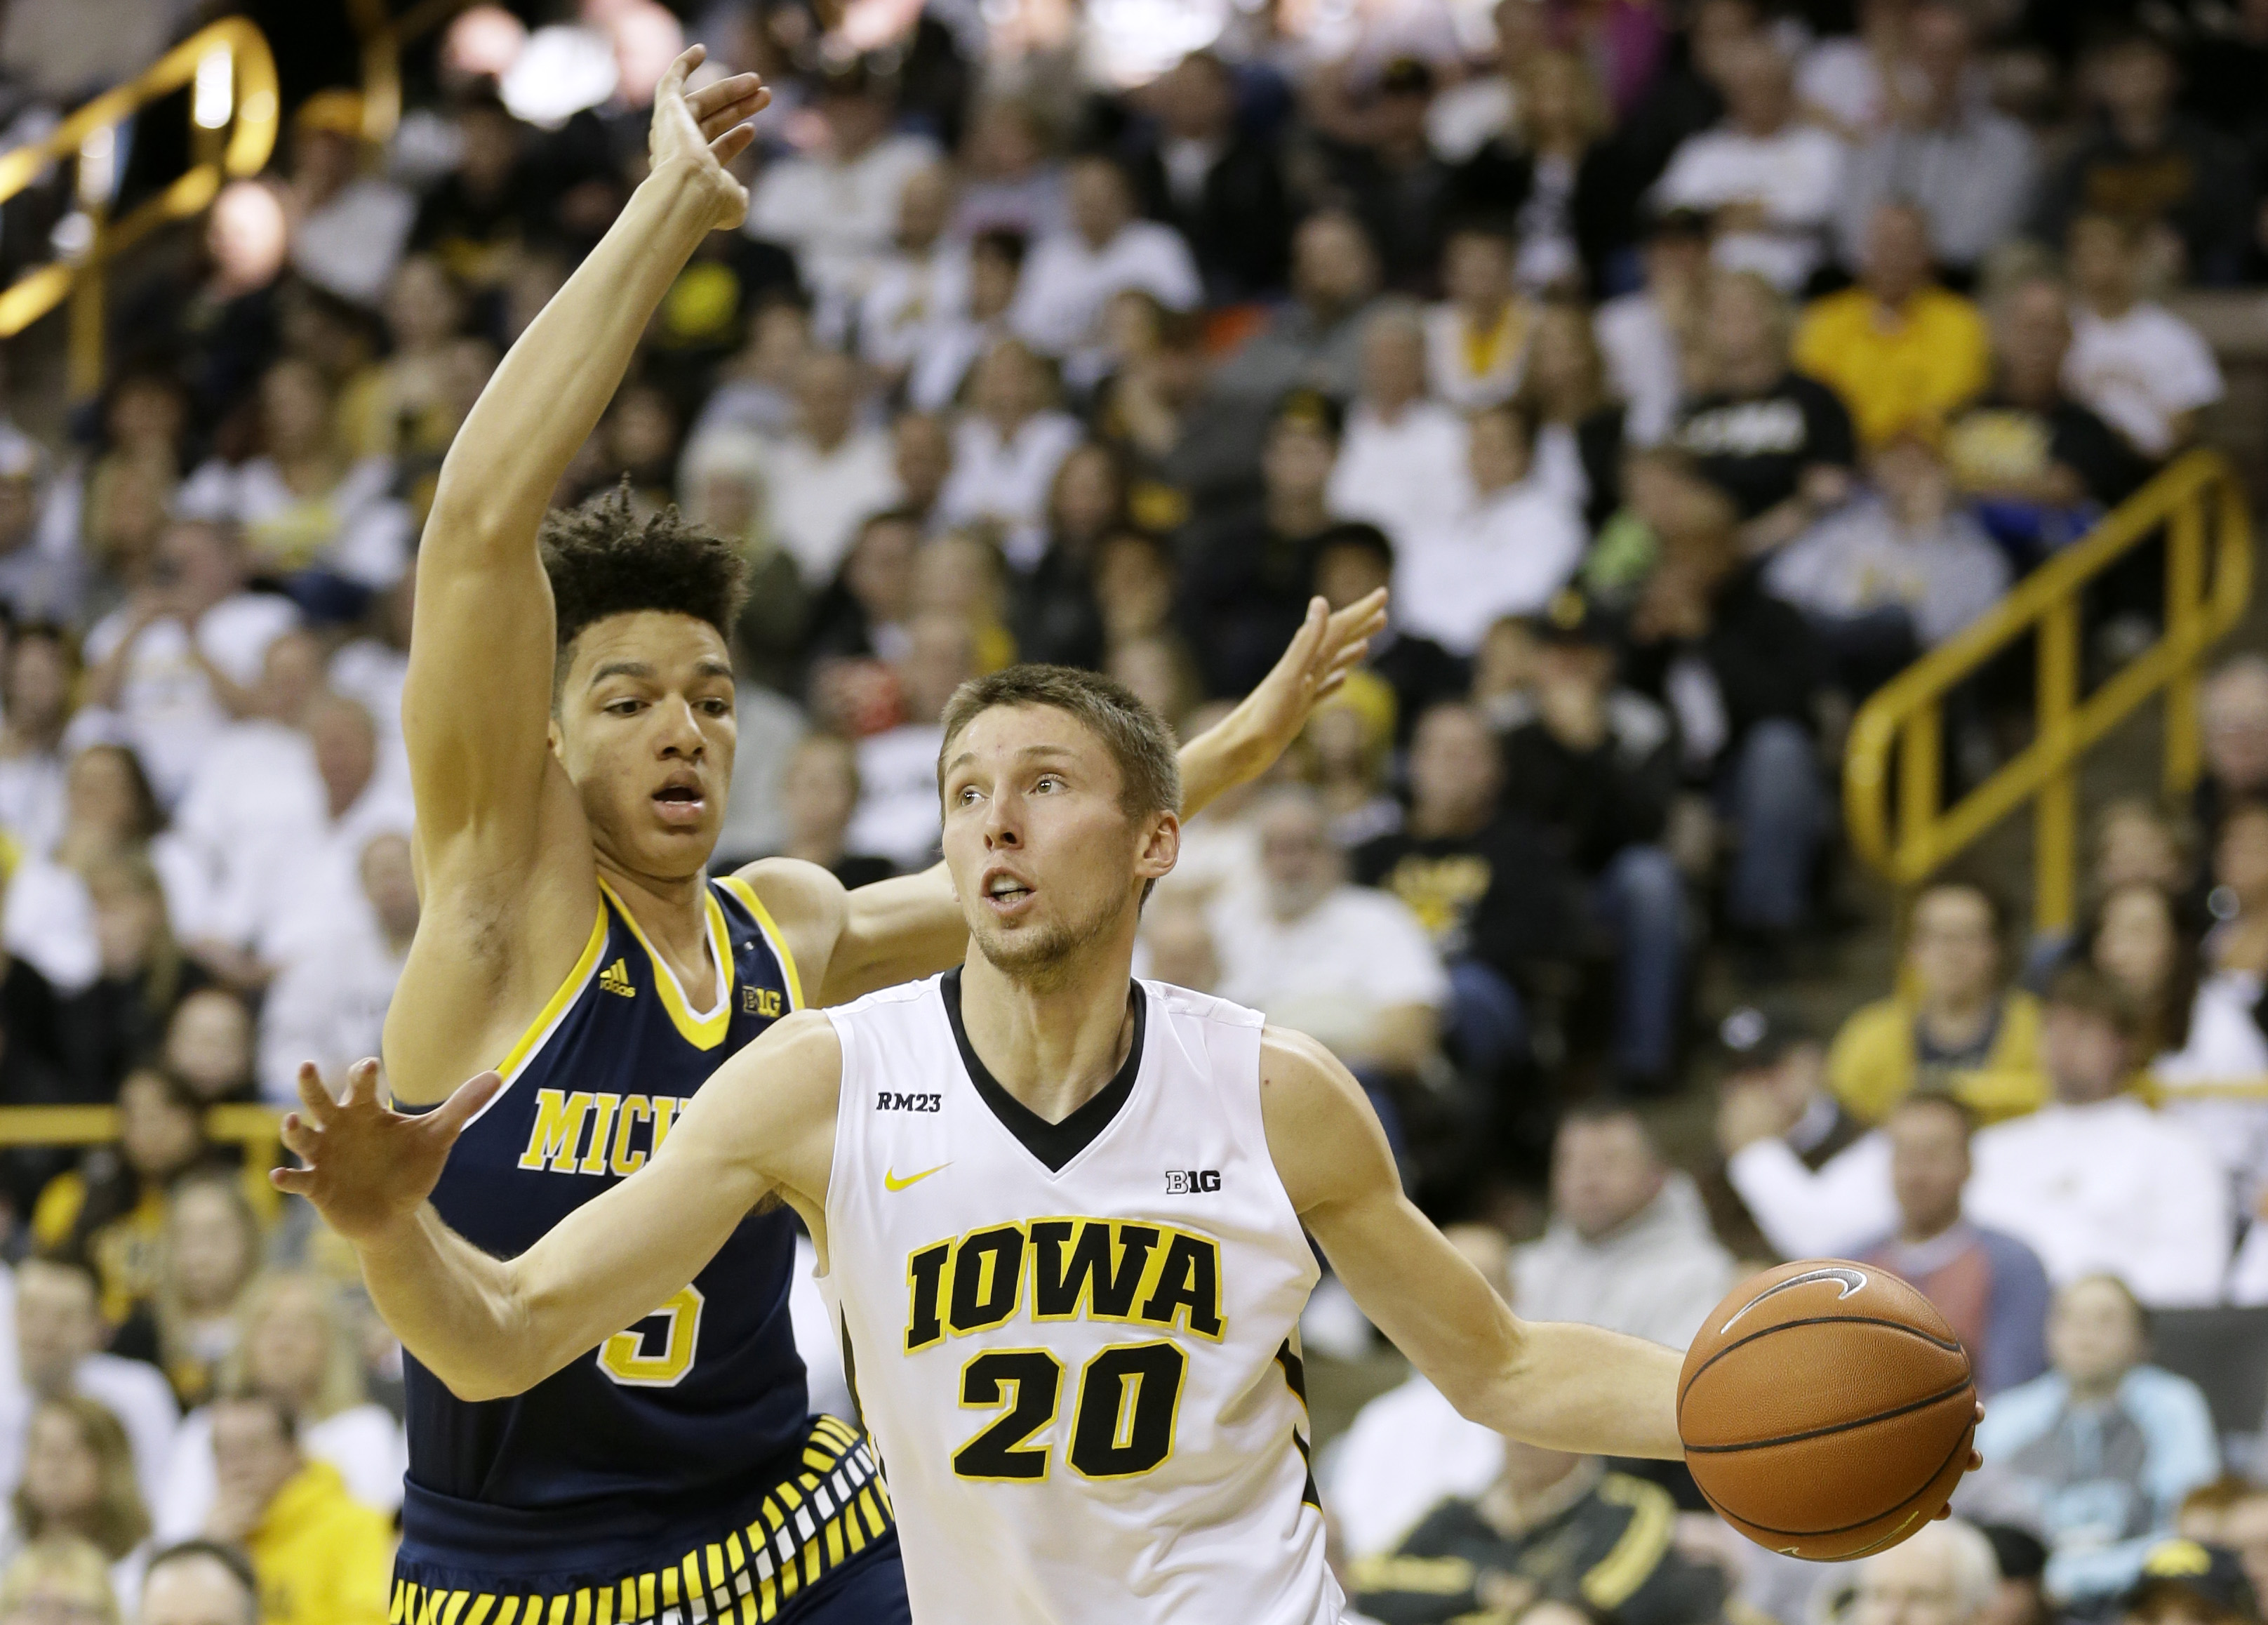 Iowa forward Jarrod Uthoff drives past Michigan forward D.J. Wilson, left, during the first half of an NCAA college basketball game, Sunday, Jan. 17, 2016, in Iowa City, Iowa. (AP Photo/Charlie Neibergall)